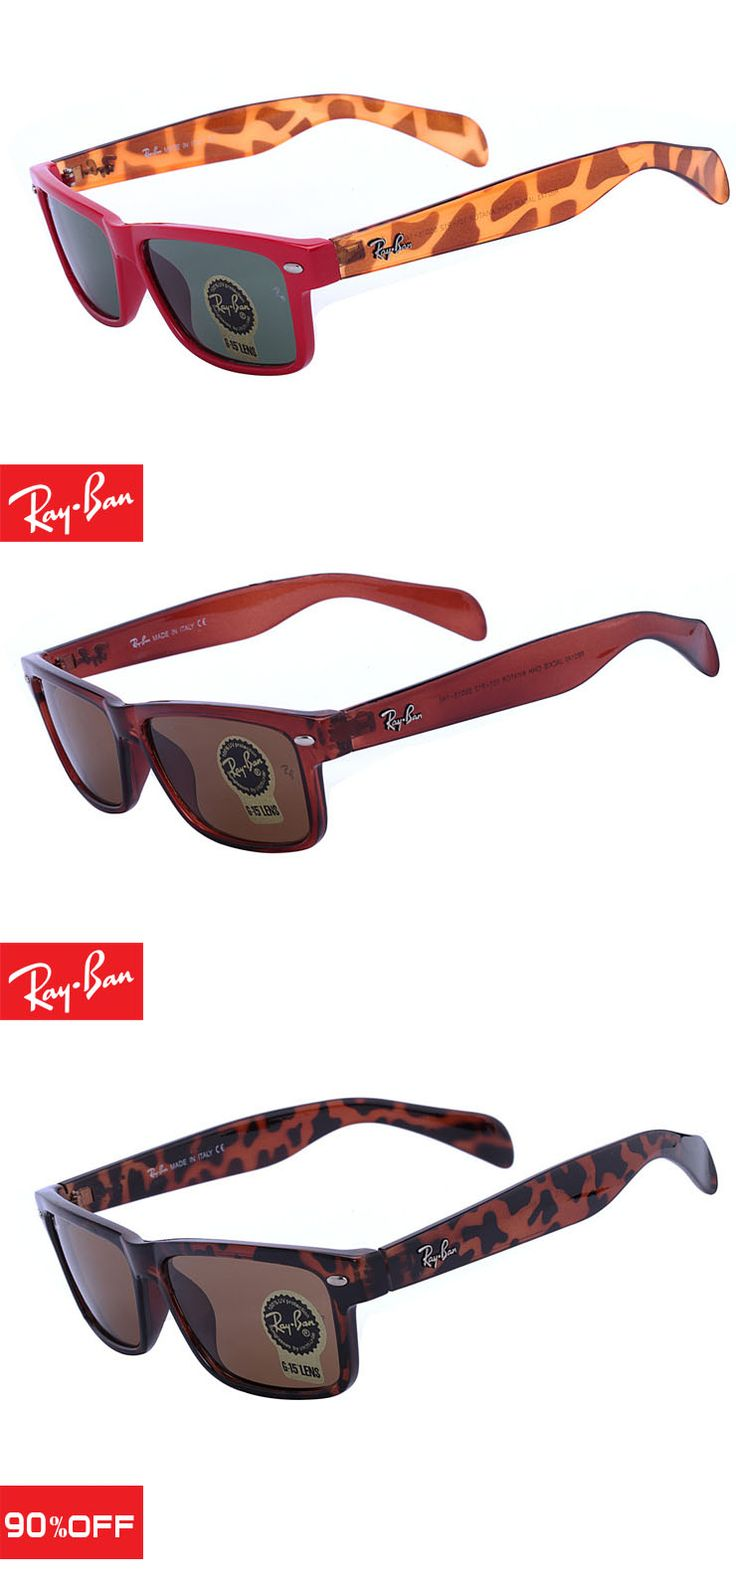 ray ban discount site real ad90ceb91c46